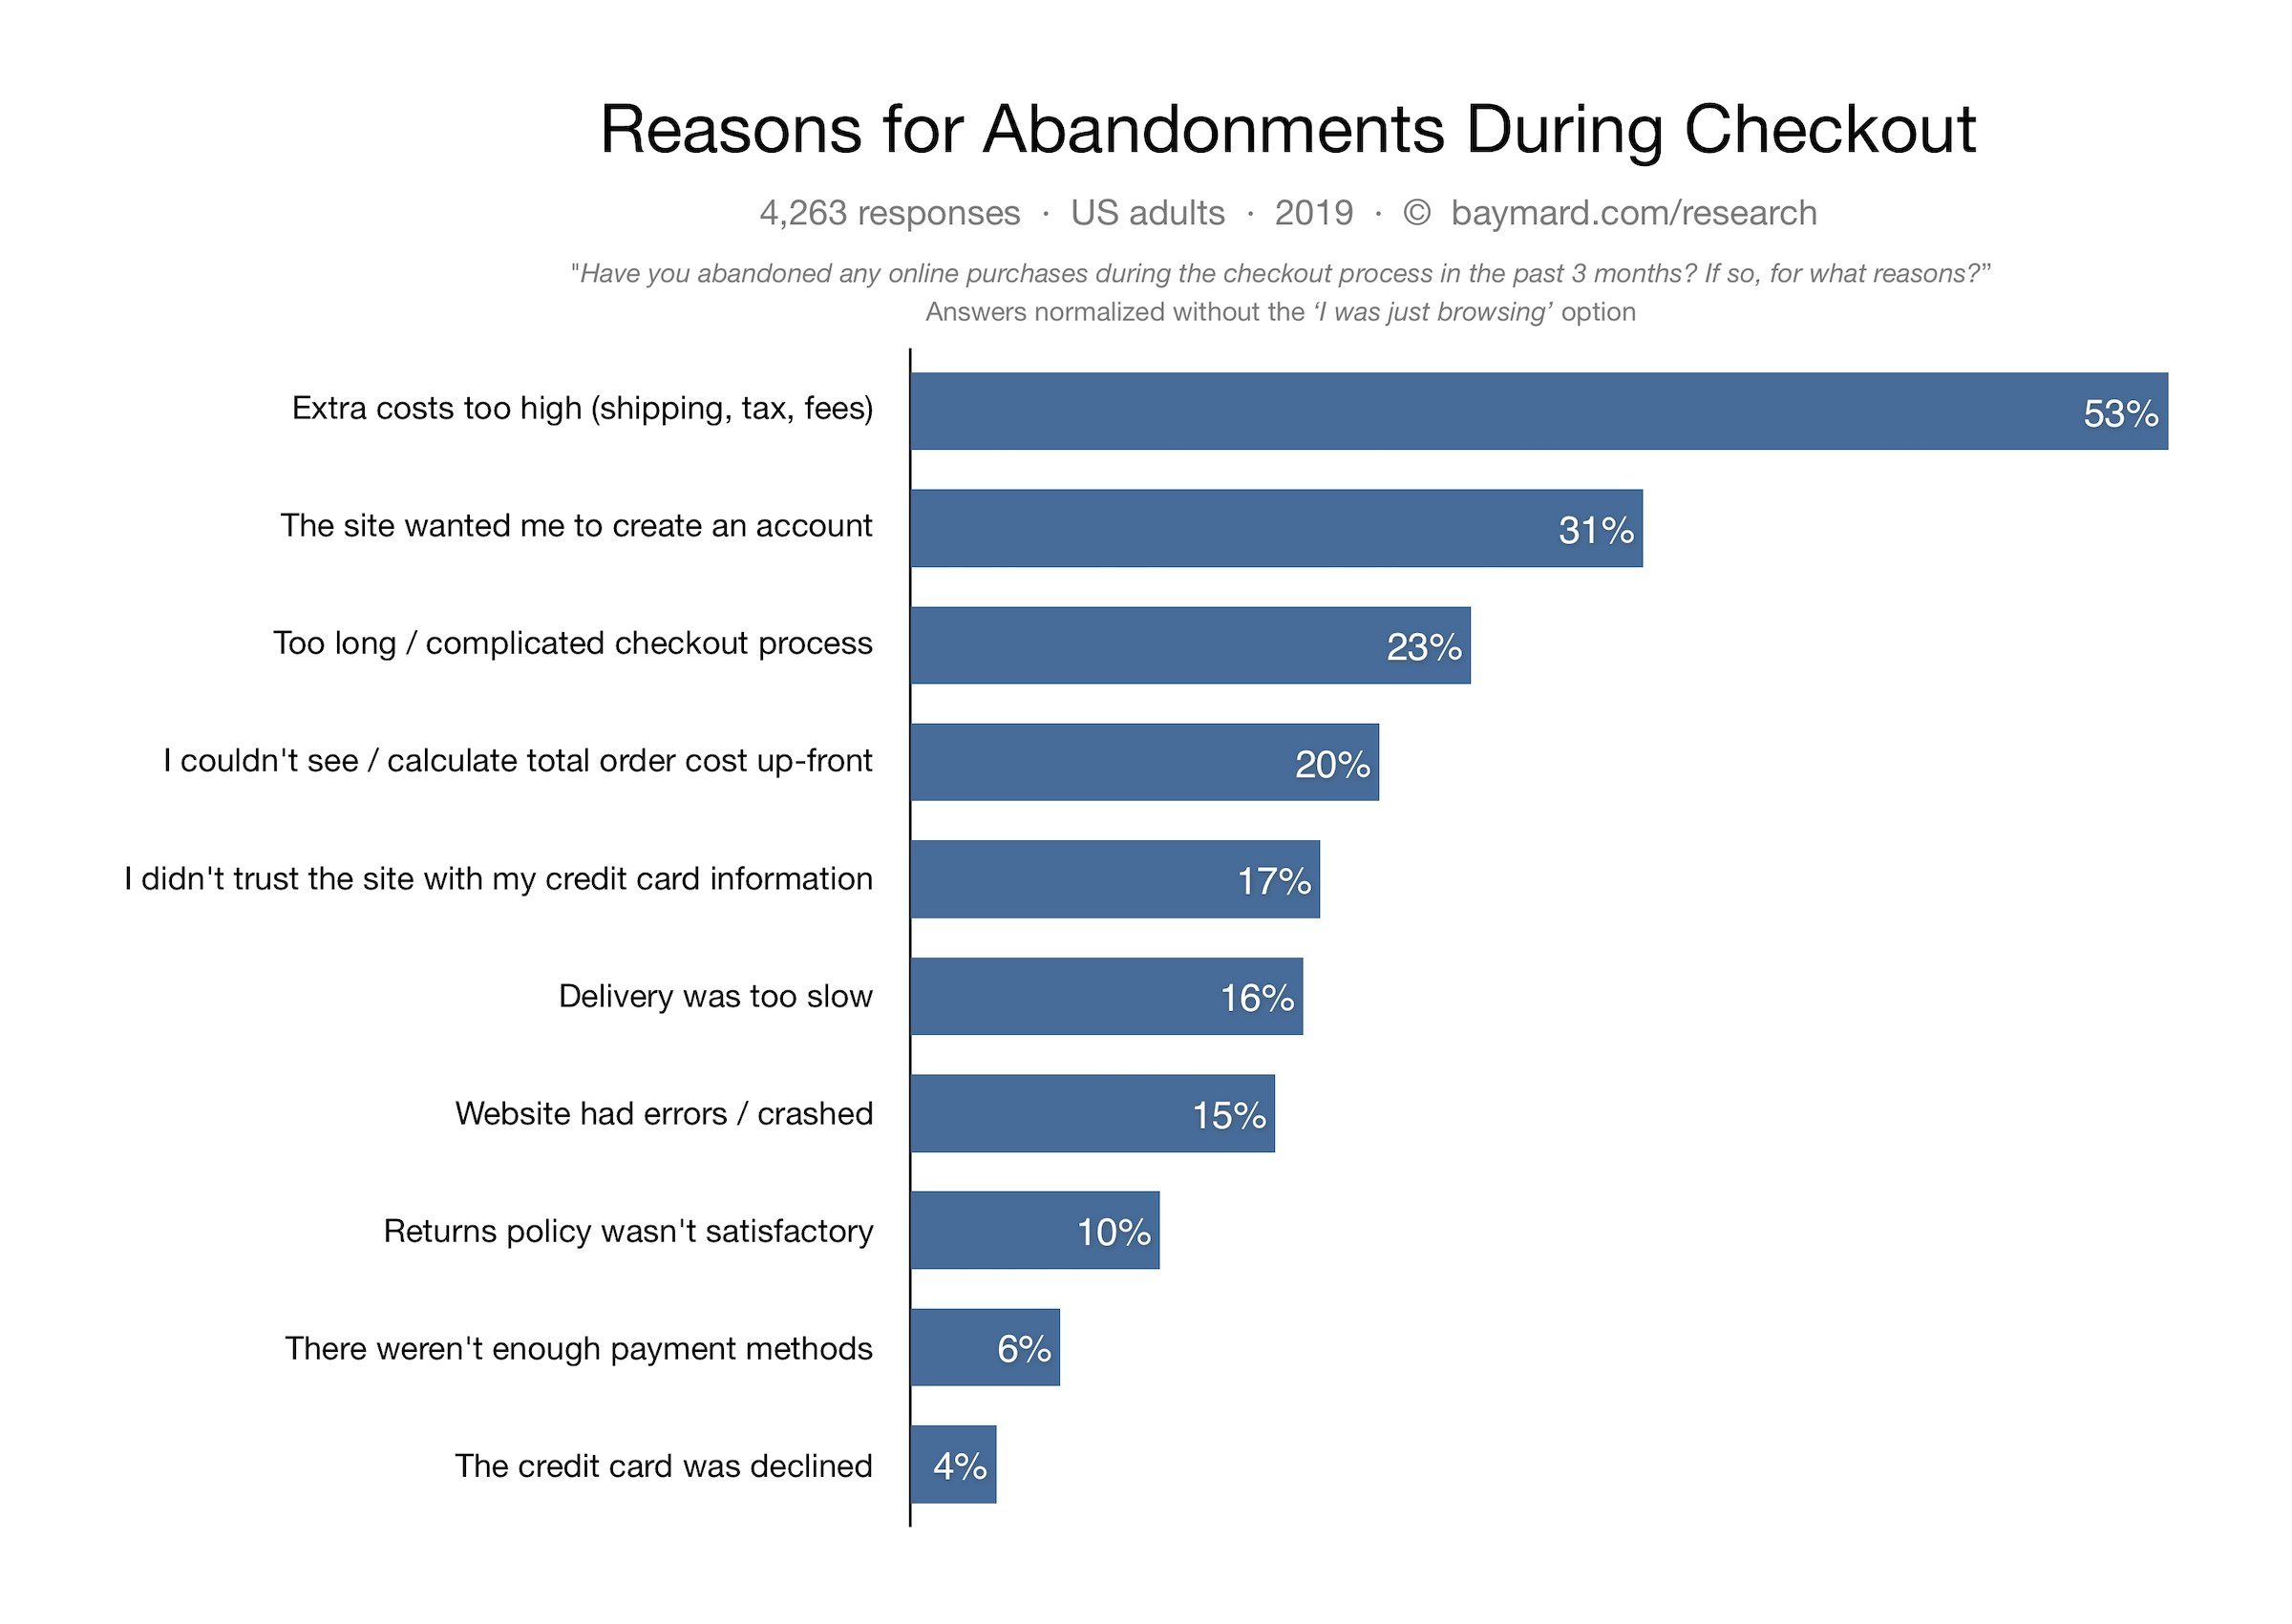 Abandonments reasons during checkout in the US online marketplaces 2019